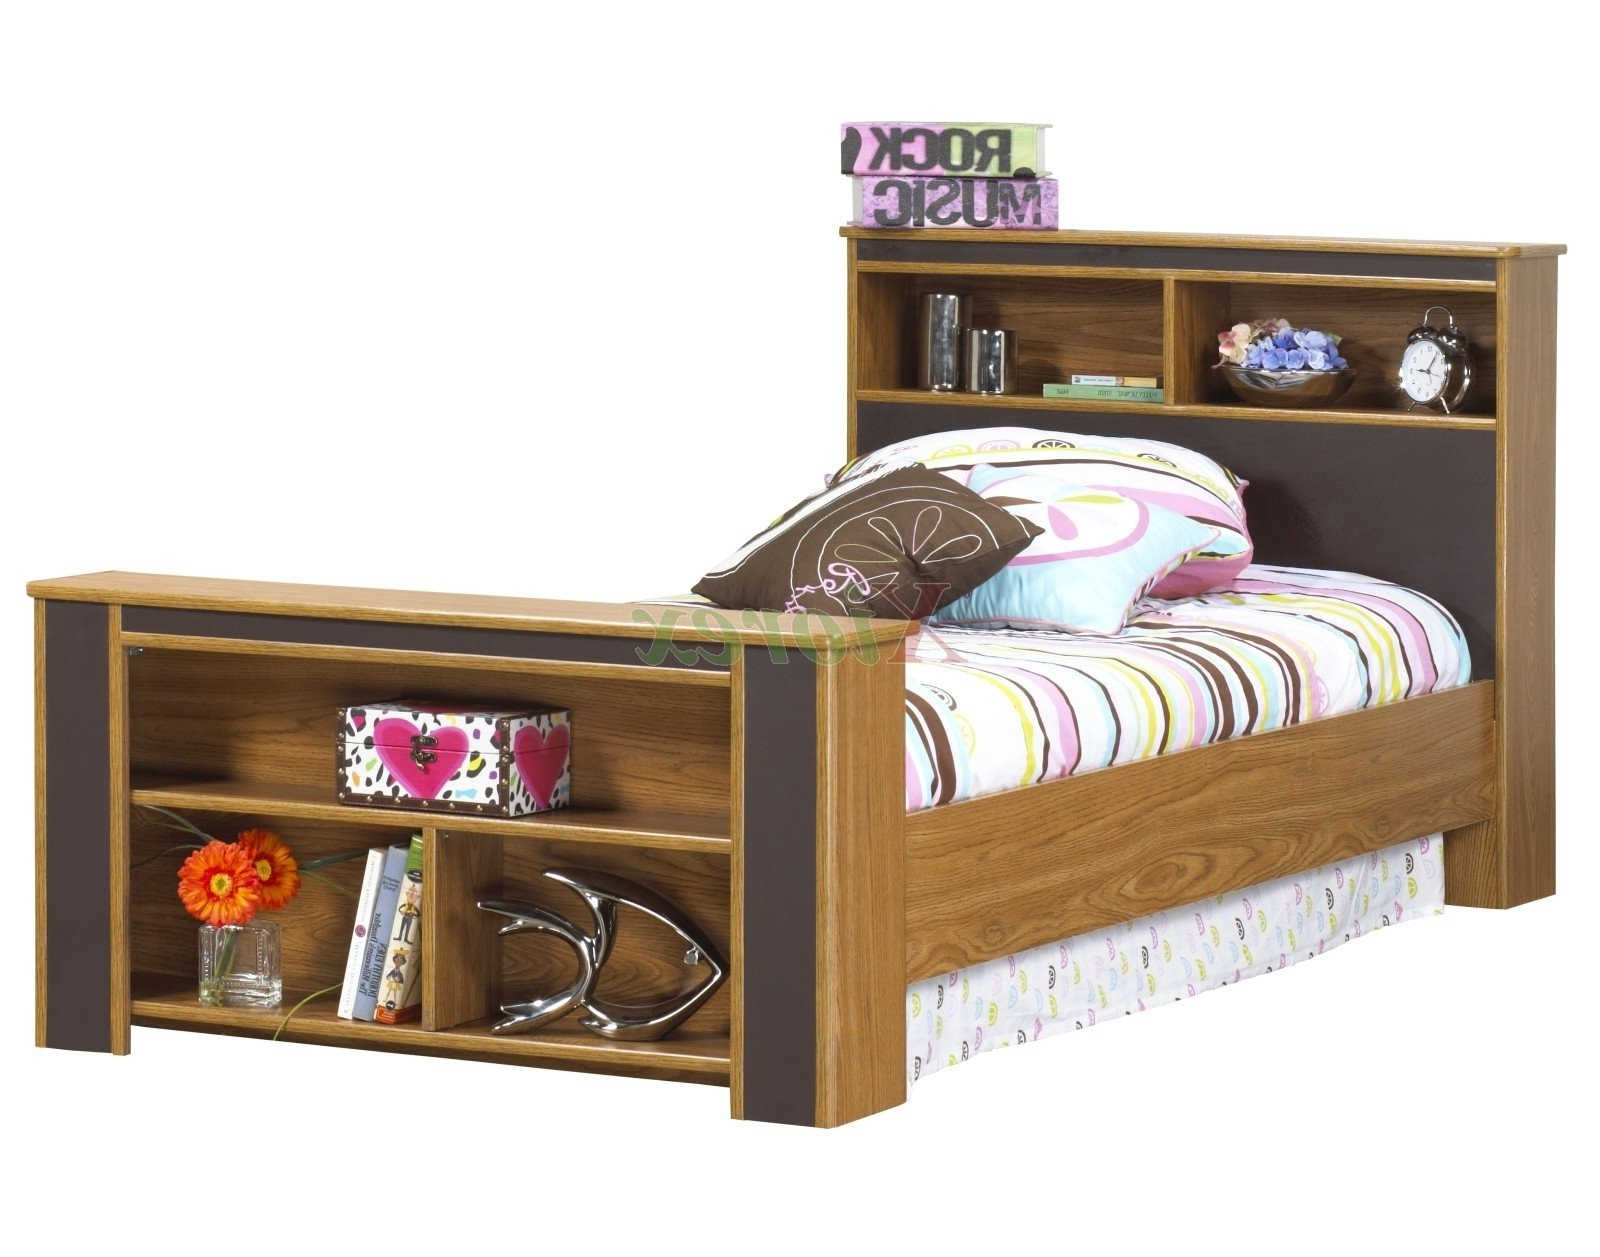 Bookcase Headboard & Footboard Bed Frames Life Line Tango Beds For Best And Newest Bed Frame Bookcases (View 10 of 15)